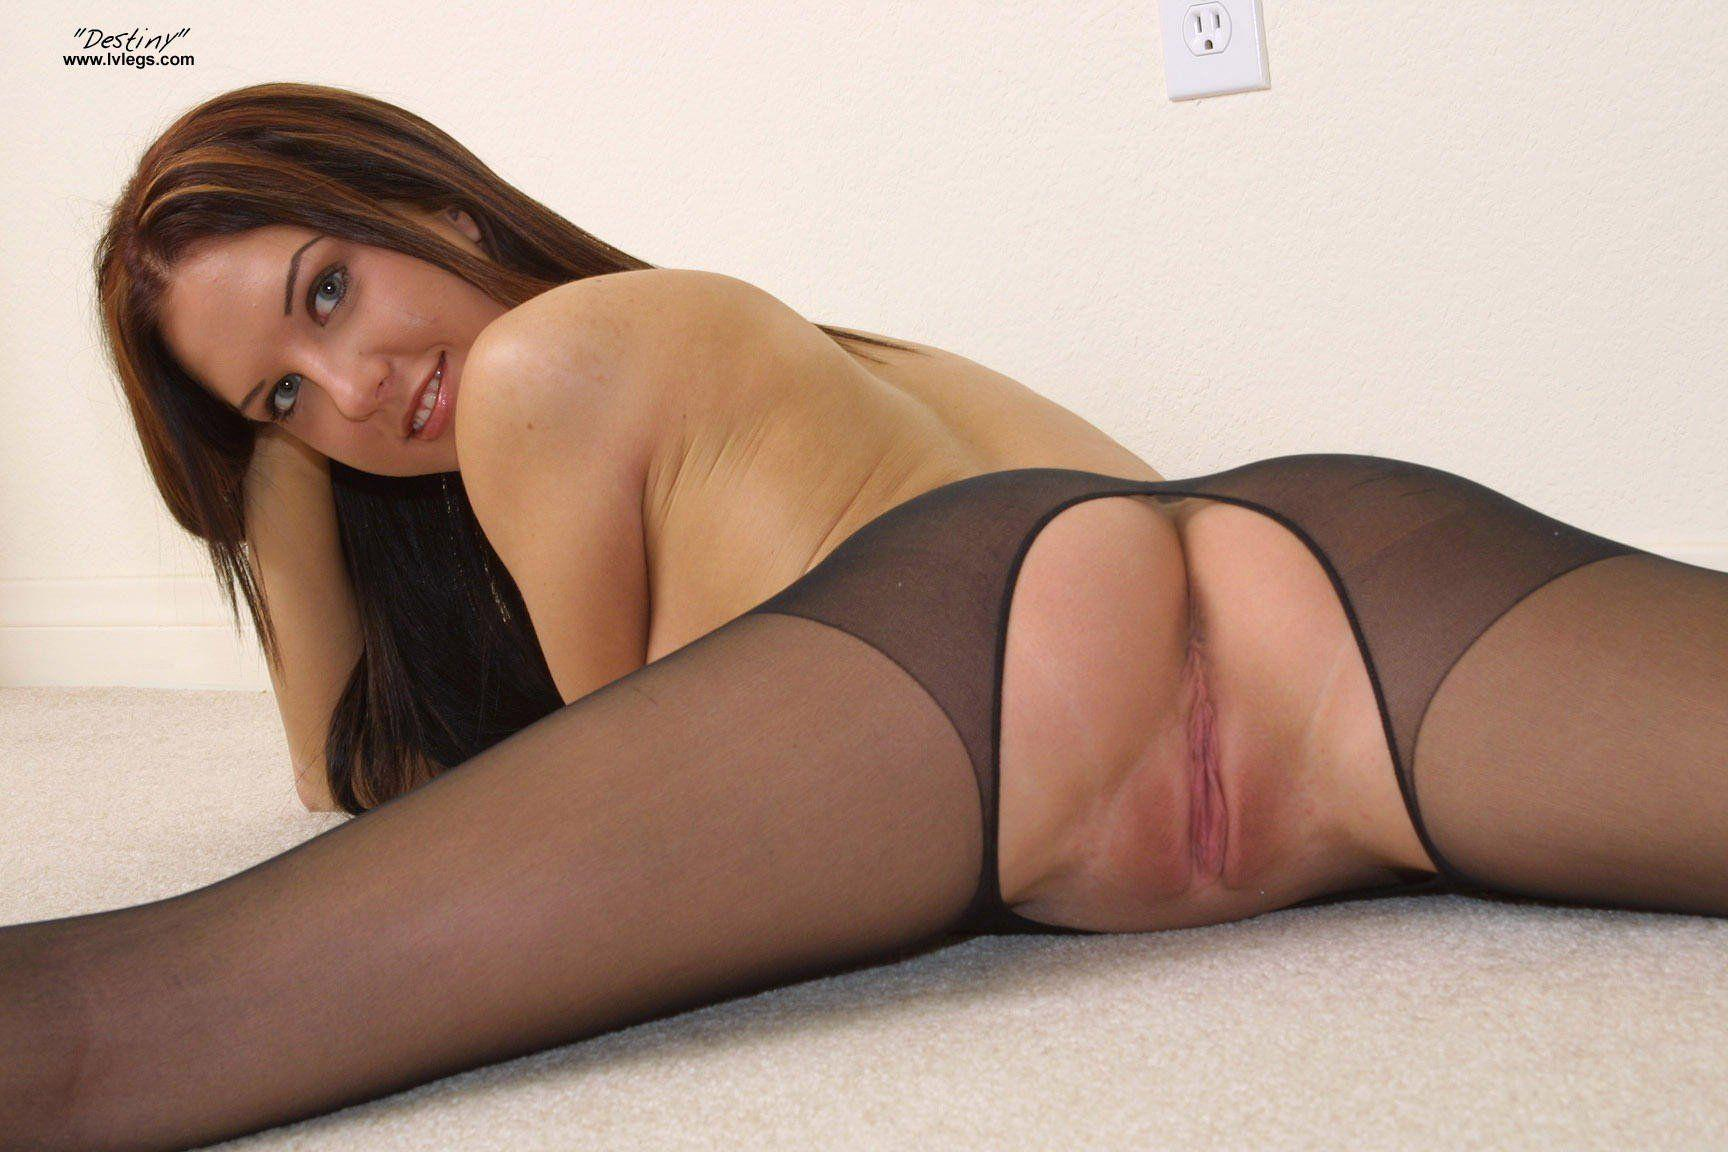 from Amare shemale pantyhose thumbnail galleries